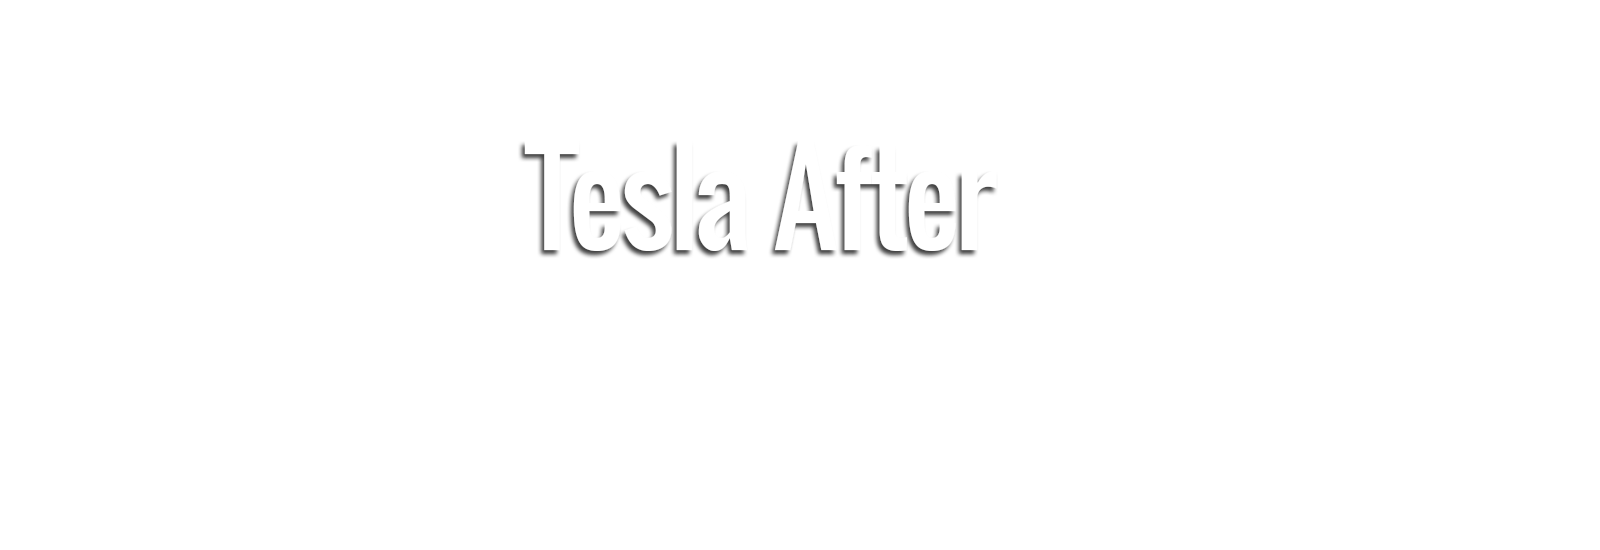 Power of excellence Tesla after